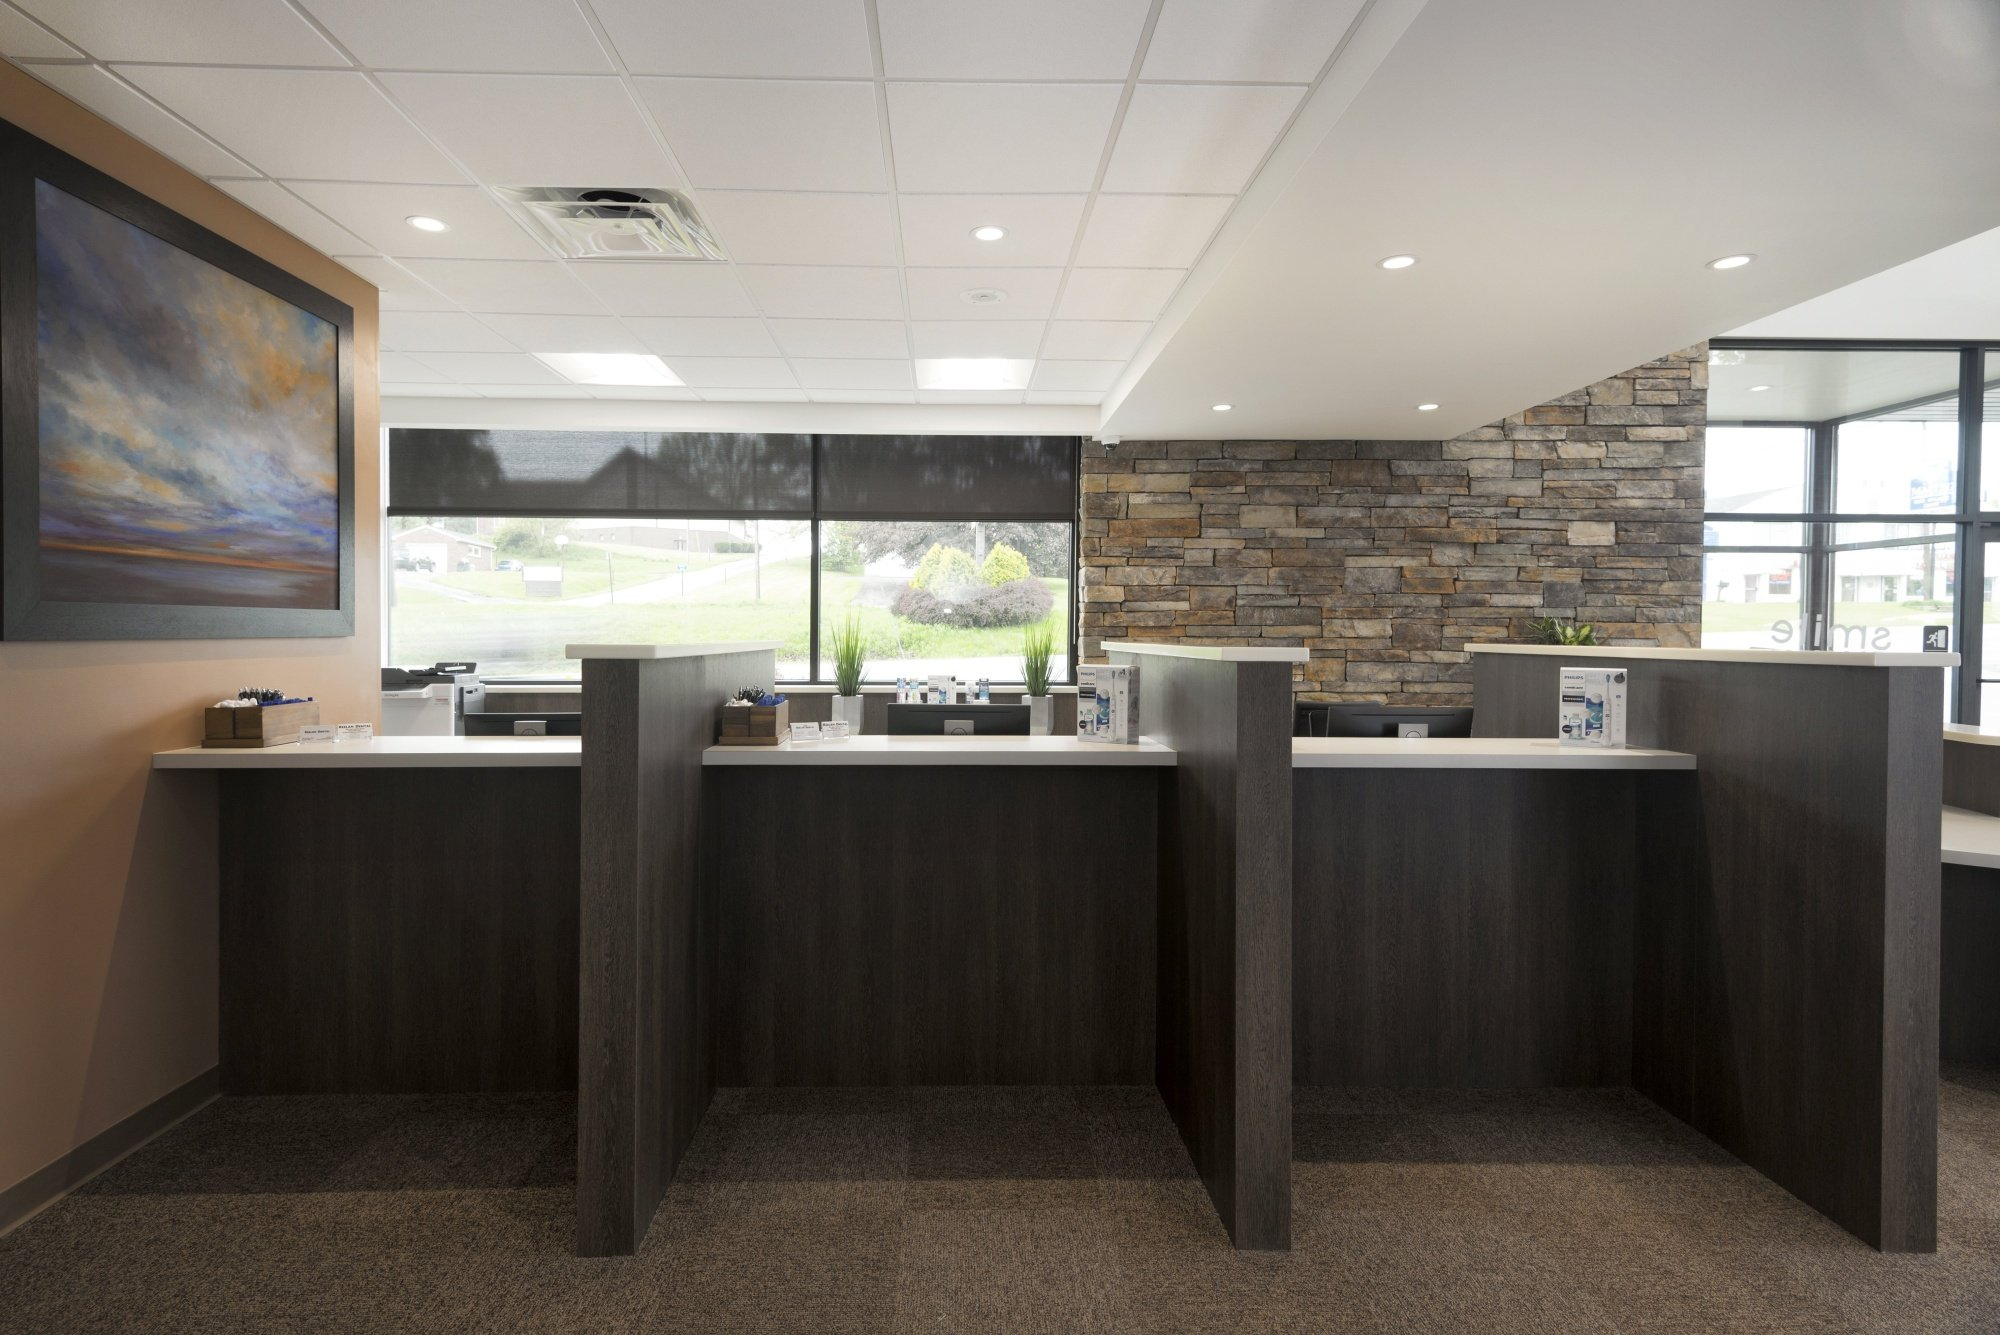 keelan-p_reception_2